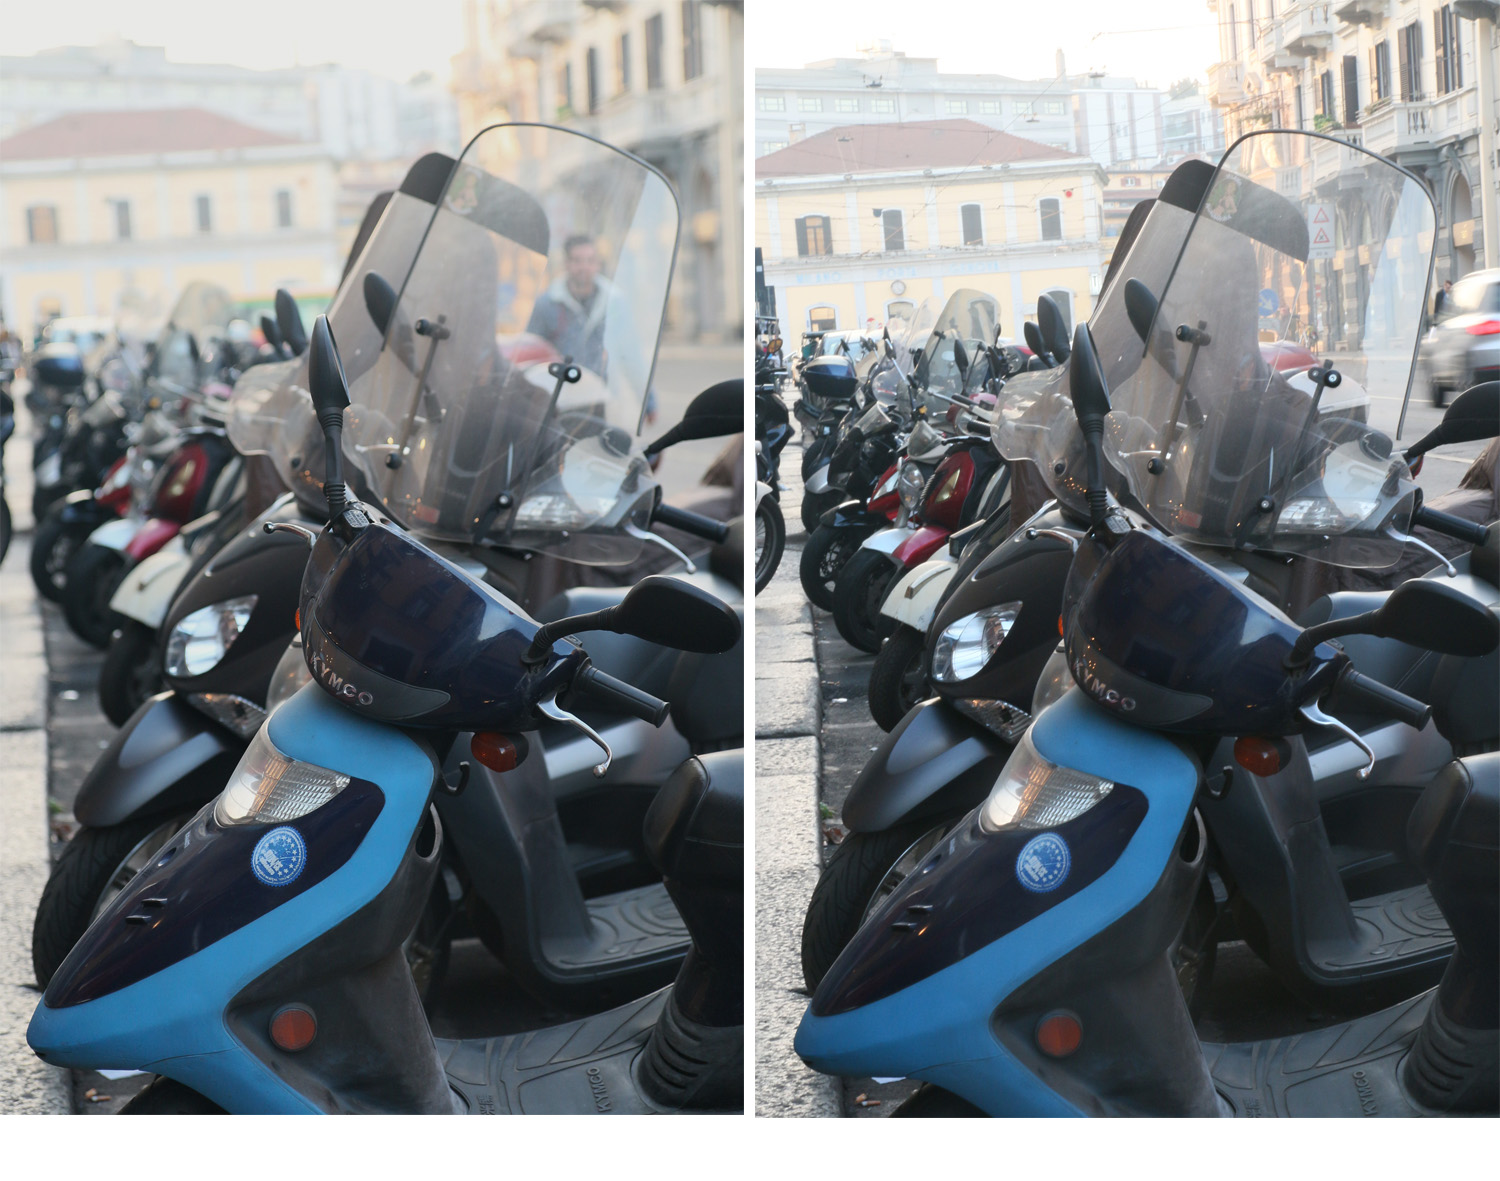 Image: Left image – APERTURE PRIORITY:1/200, f/2.8, ISO 800 = Shallow depth of field. Right im...